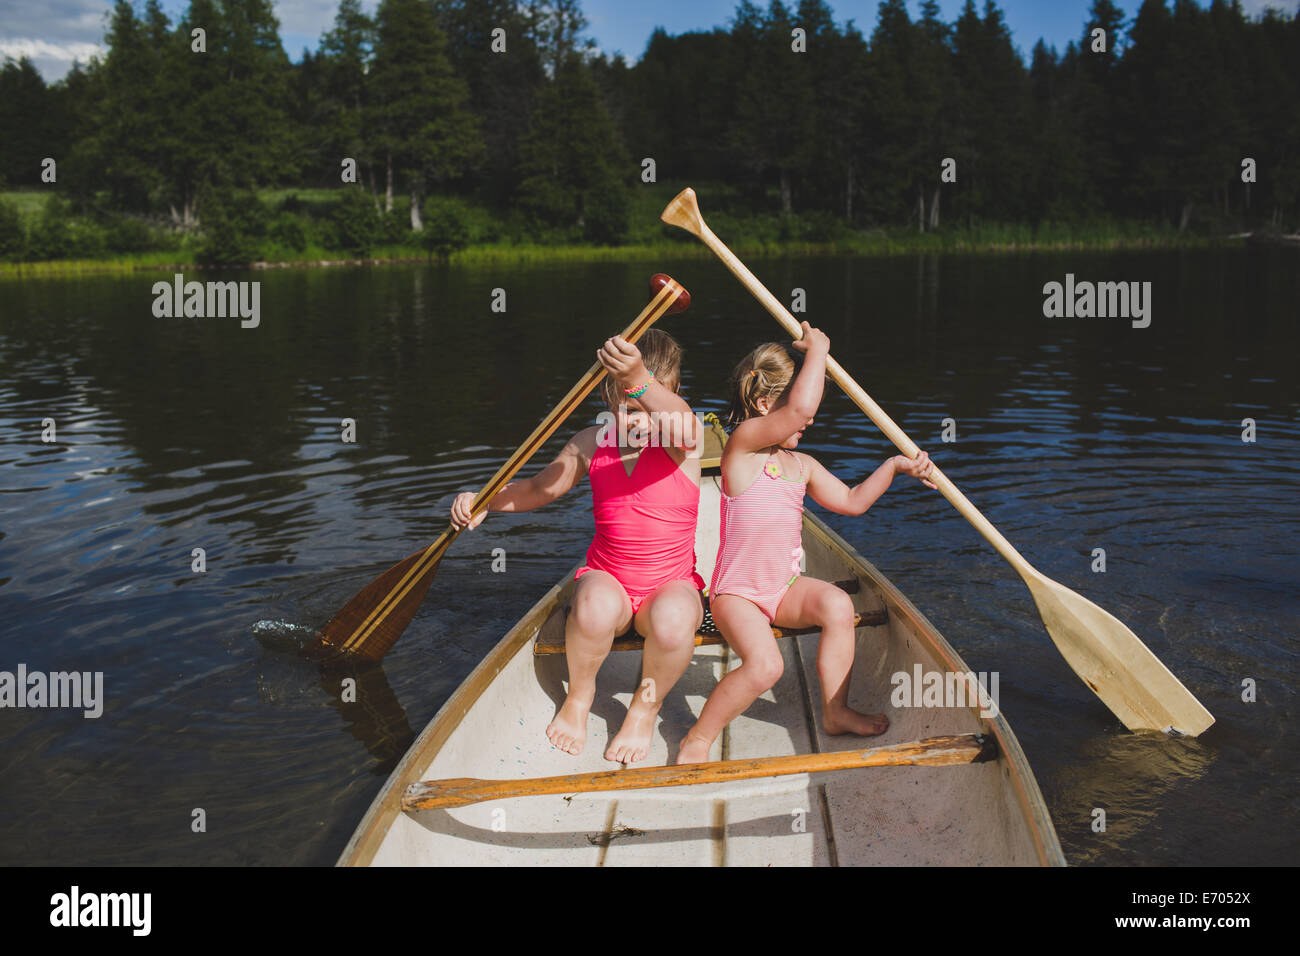 Two young sisters rowing in canoe on Indian river, Ontario, Canada - Stock Image